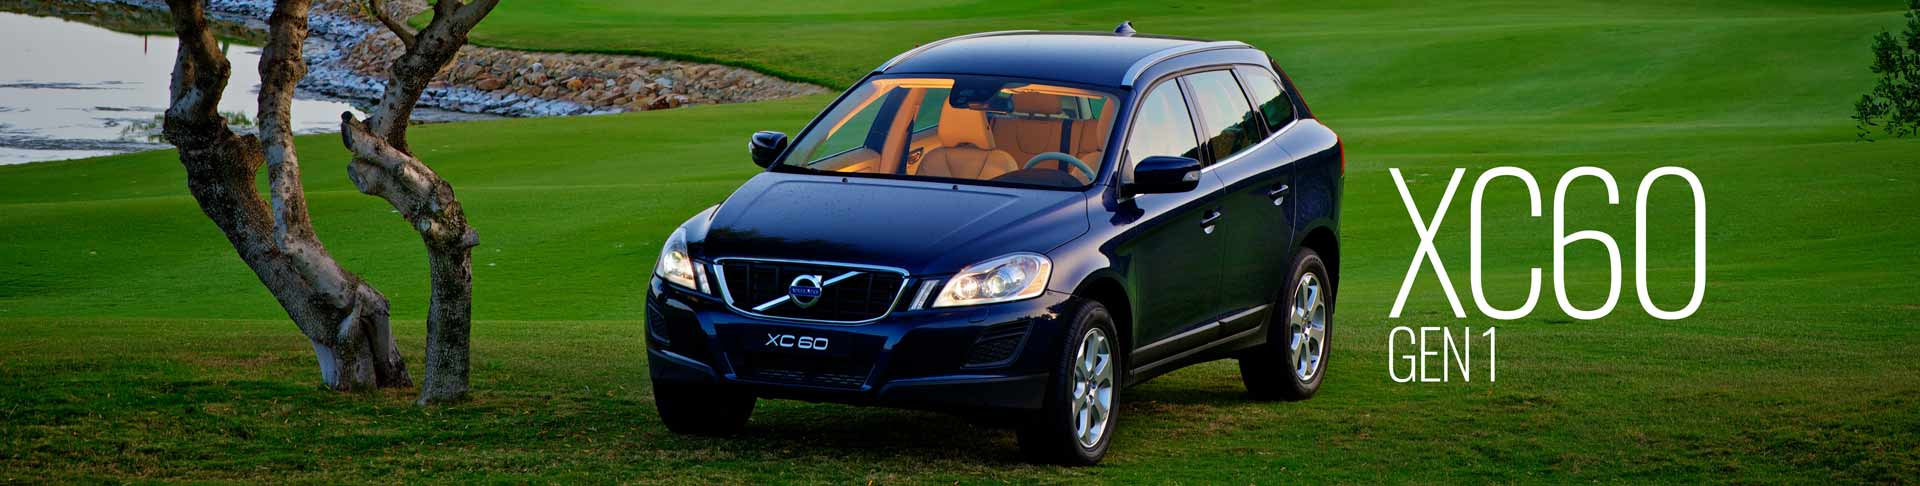 XC60 First Generation